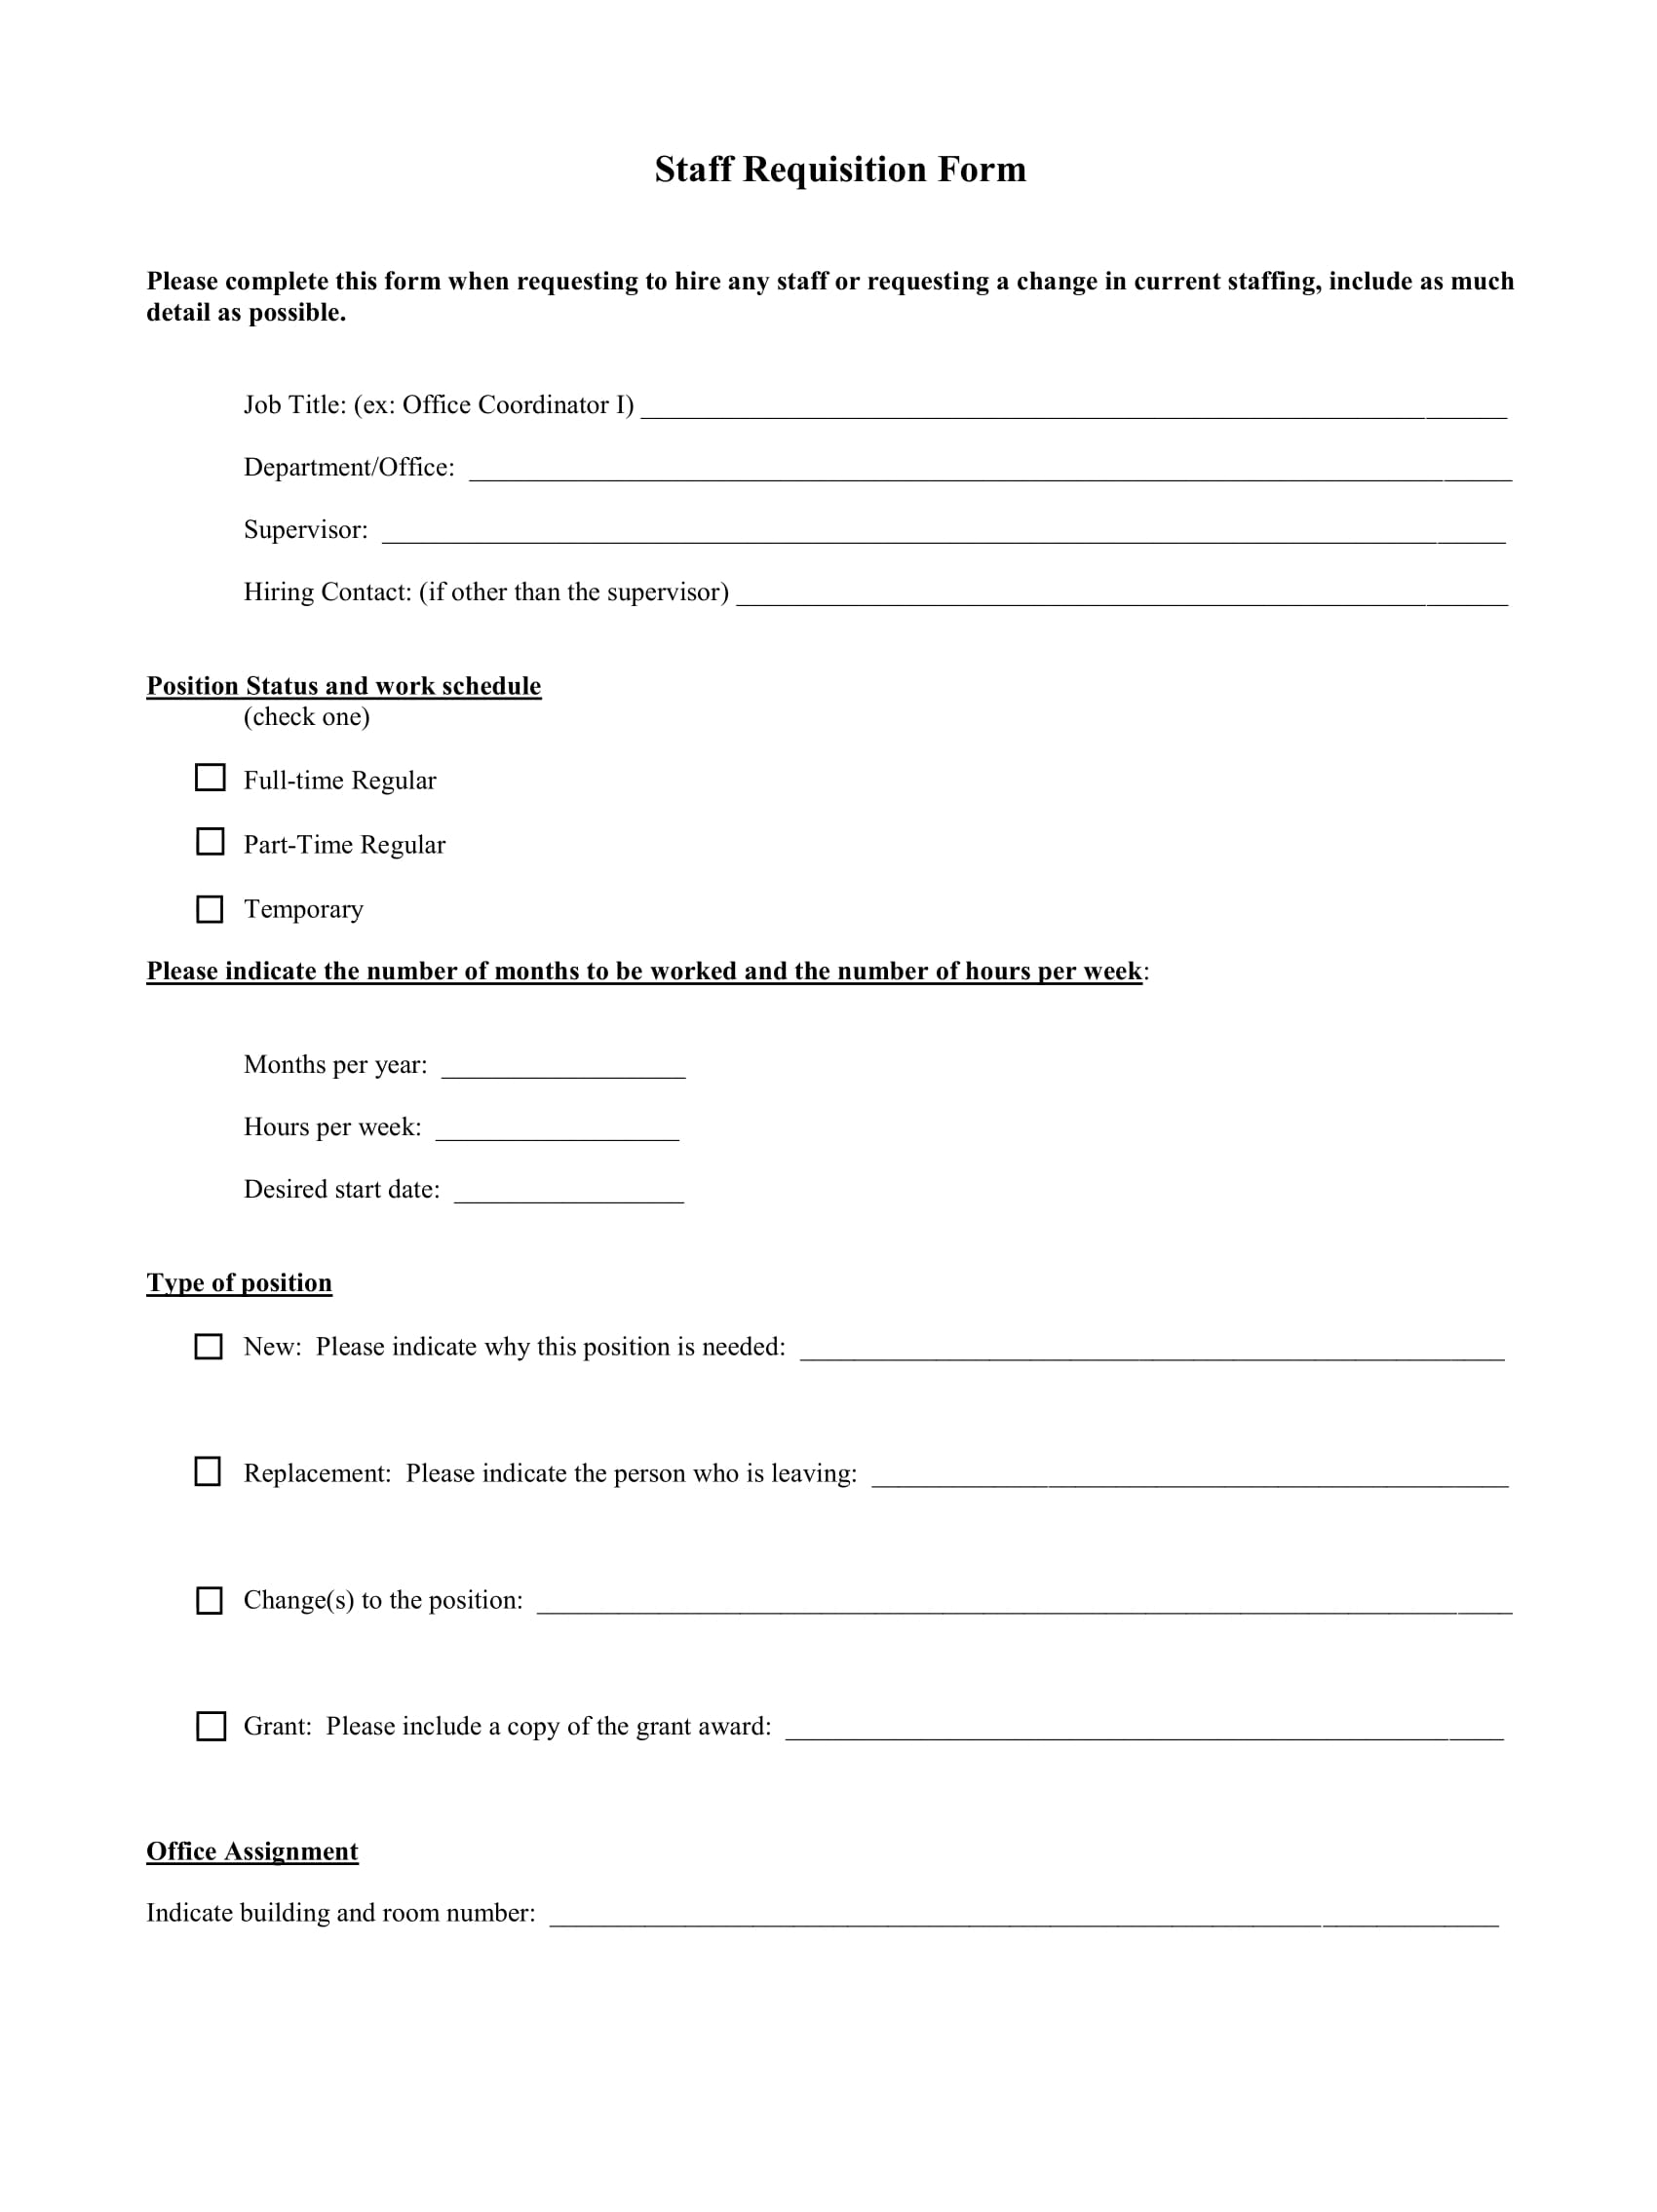 staff requisition form 1